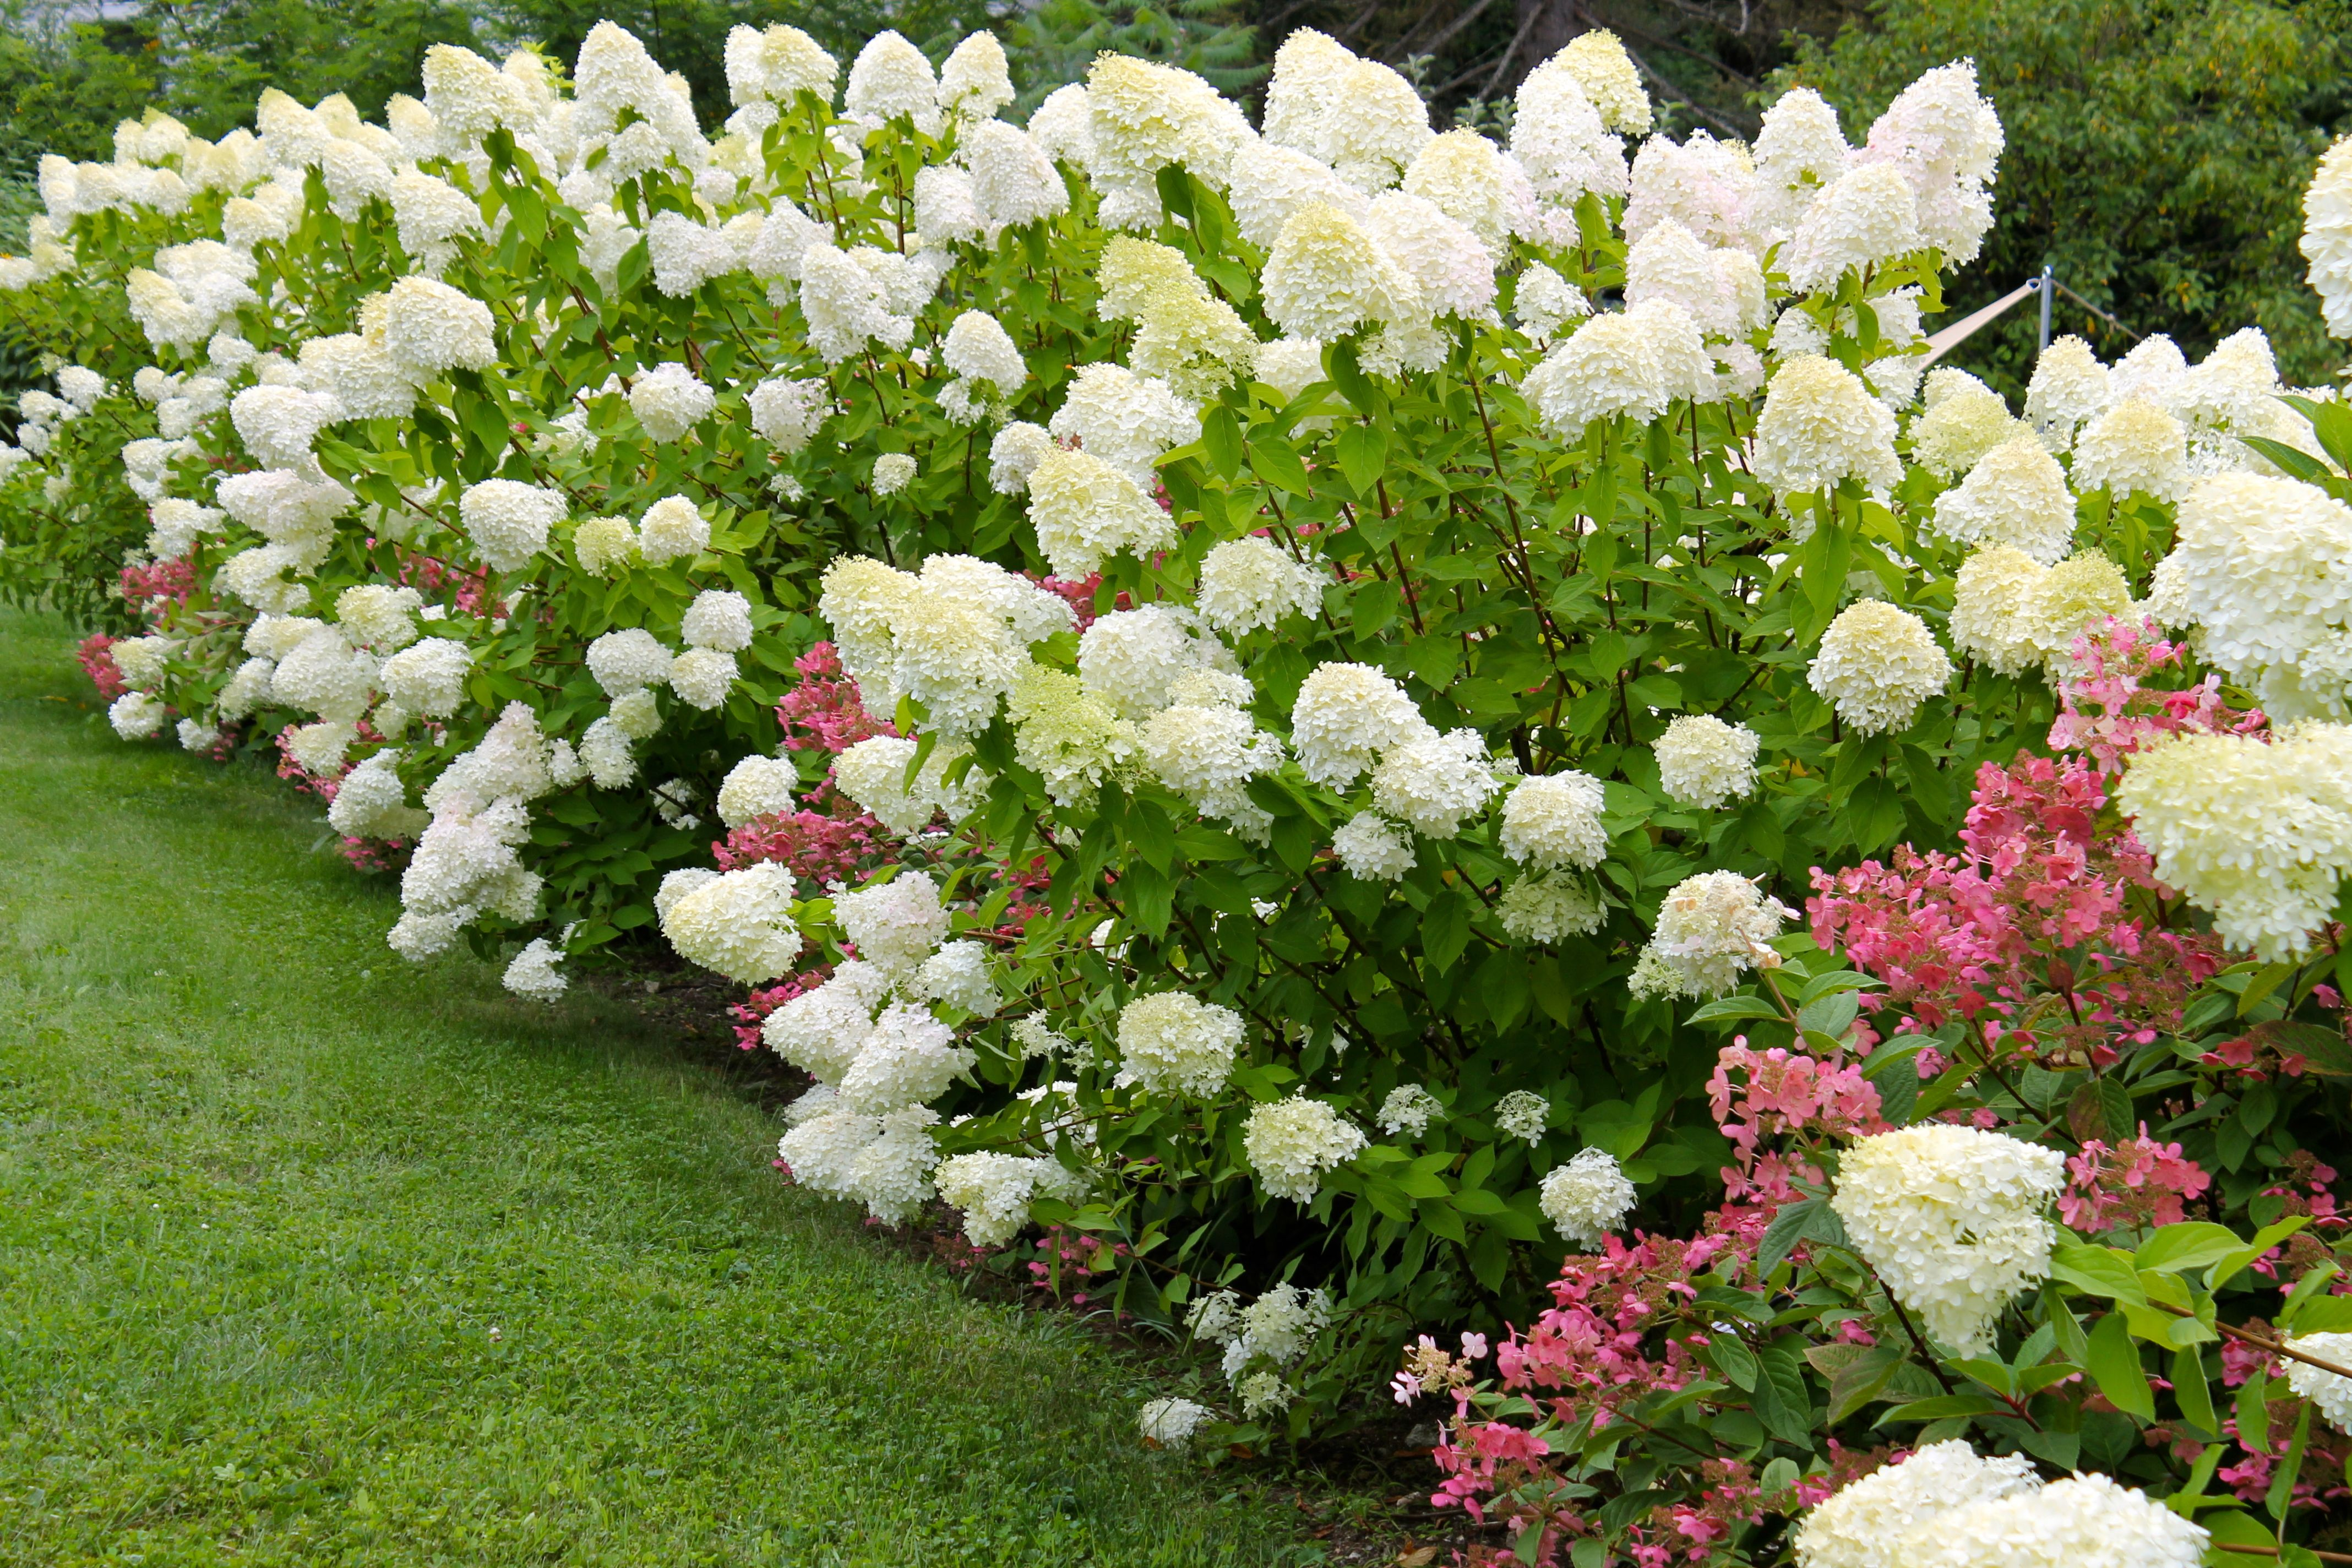 A Wall Of Limelight Hydrangeas Planted Together With Firelight Hydrangea Make A Fabulous Plant Combination Planting Hydrangeas Limelight Hydrangea Plants